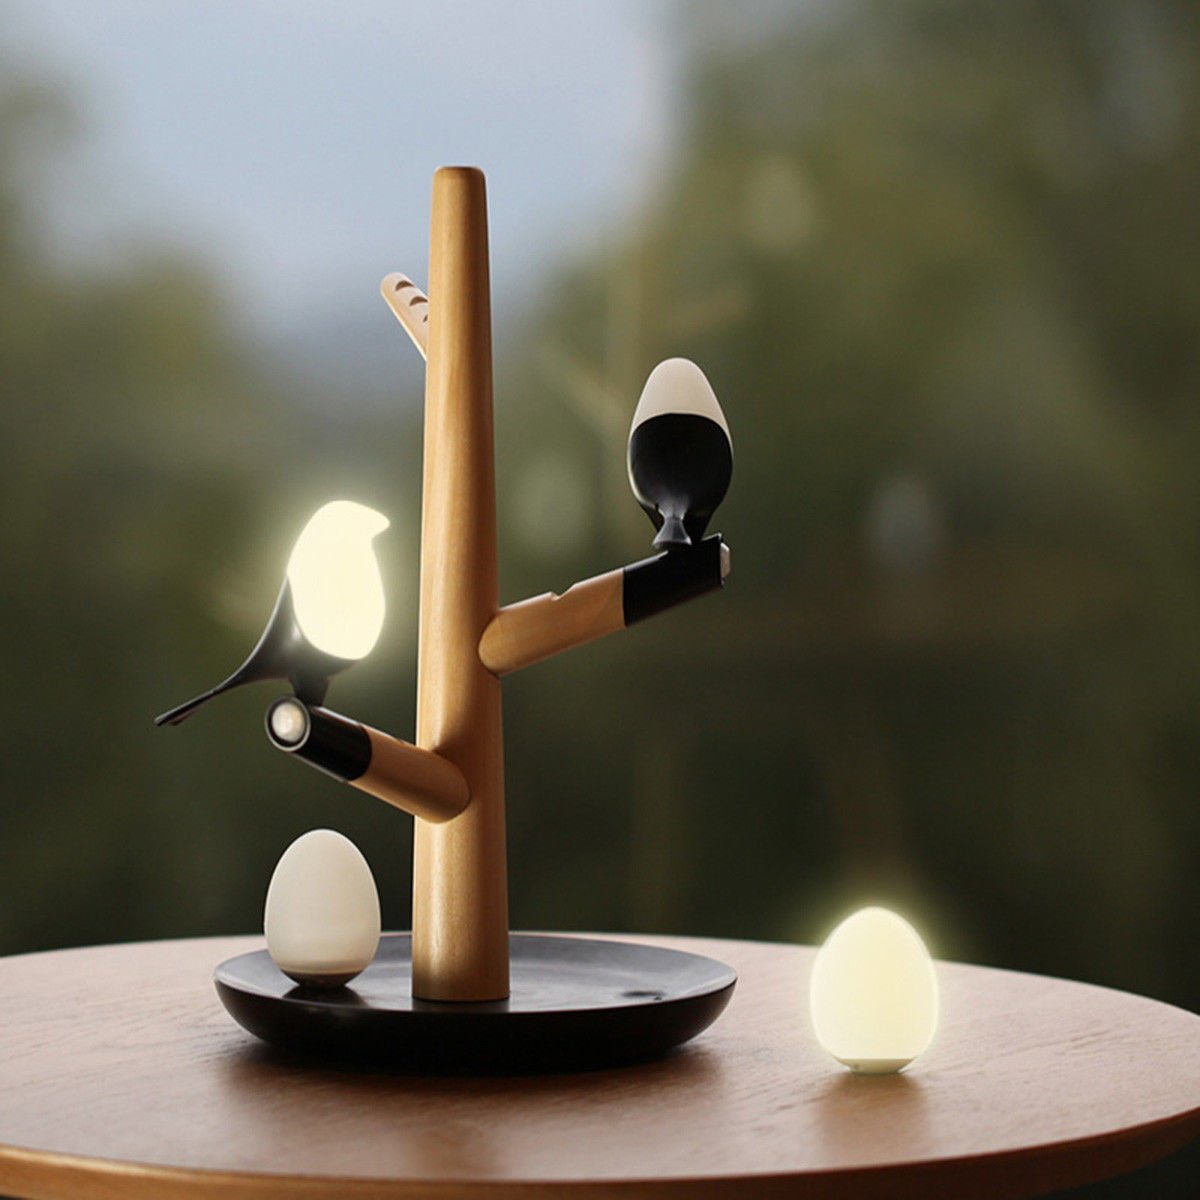 Product Of The Week: Cute Rechargeable Birds On A Branch ...